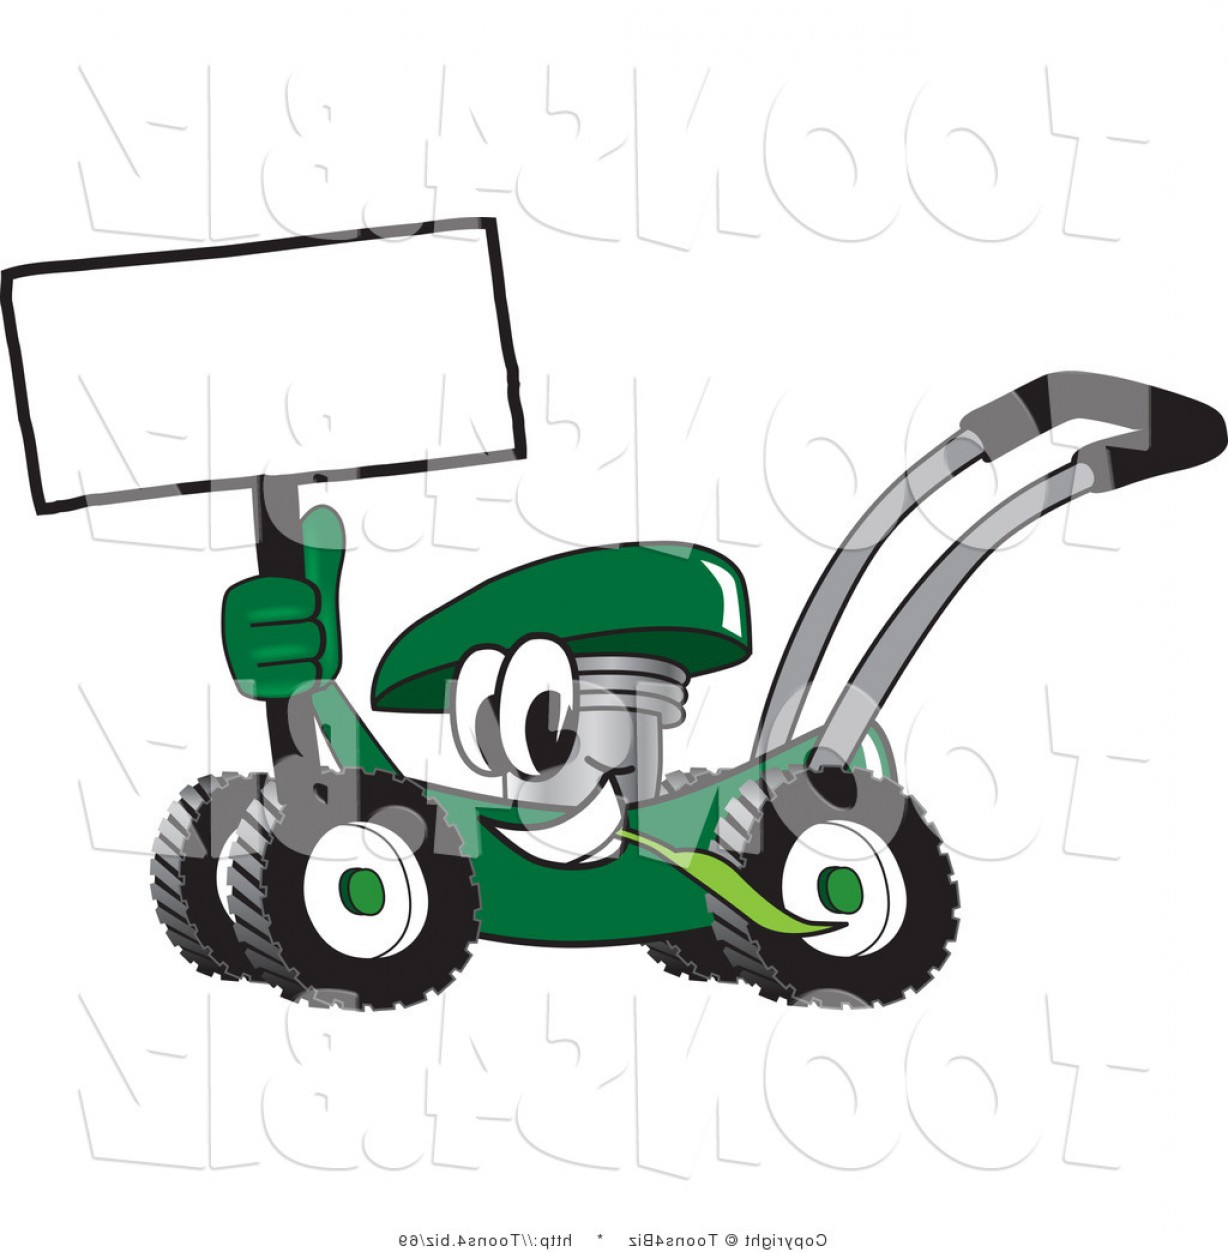 1228x1252 Vector Illustration Of A Green Cartoon Lawn Mower Mascot Holding A